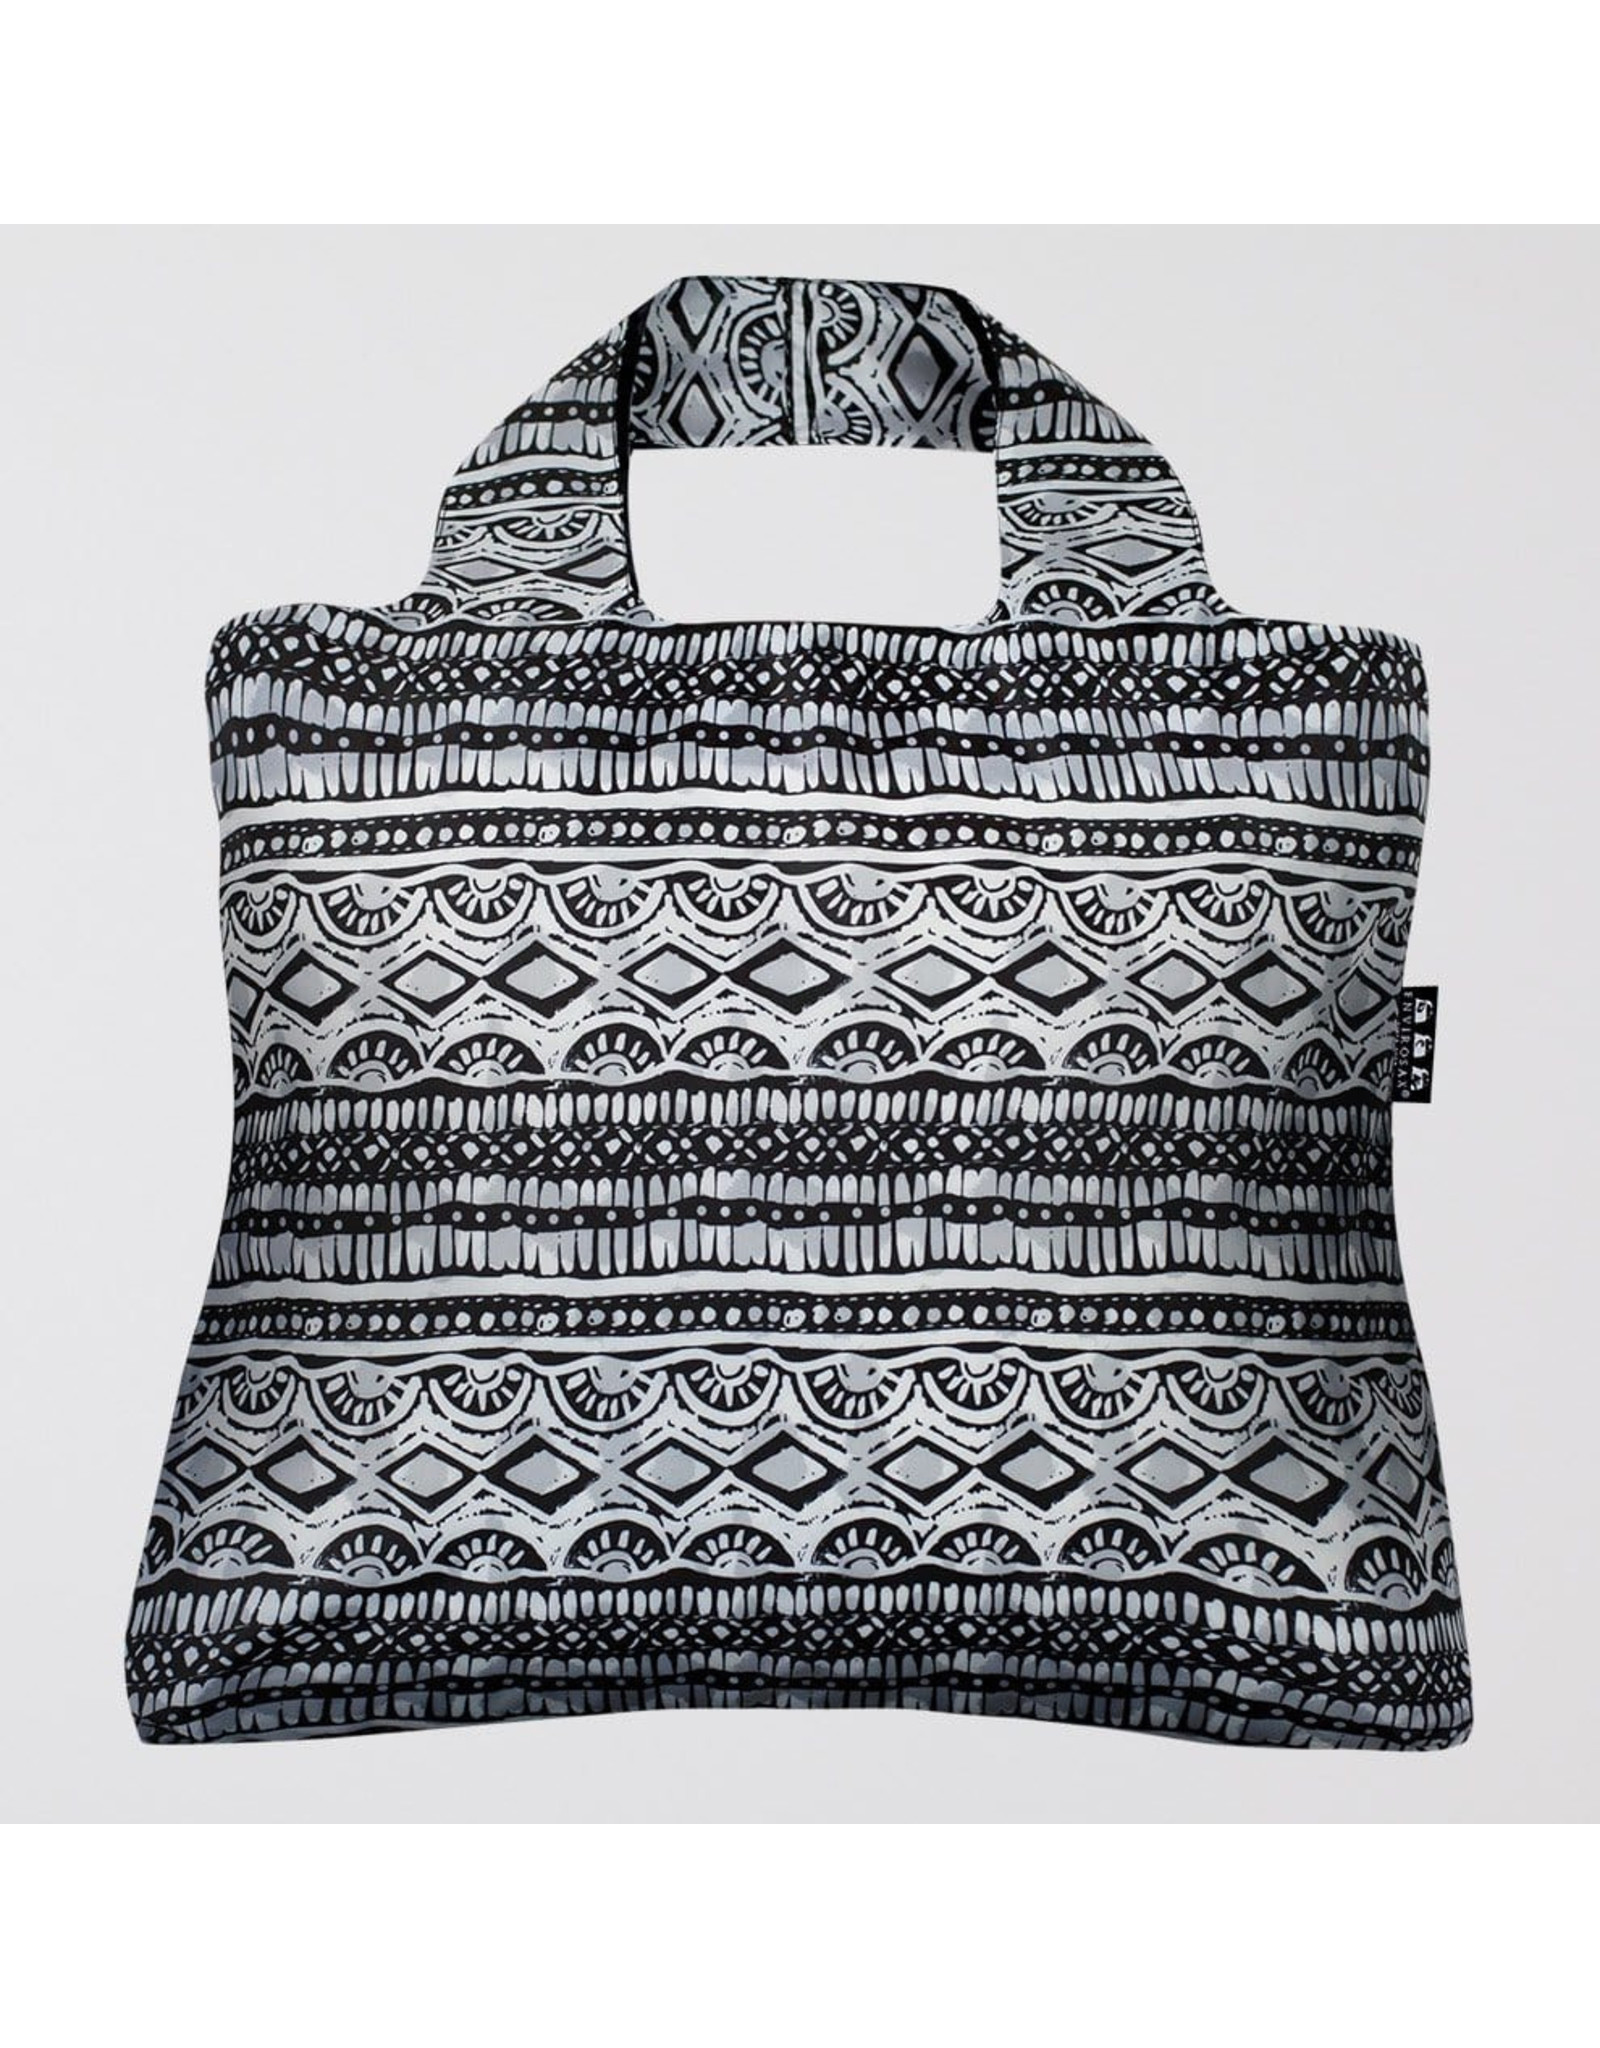 Envirosax Out of Africa Stripe - Pocket Sized Reusuable Bag from Envirosax